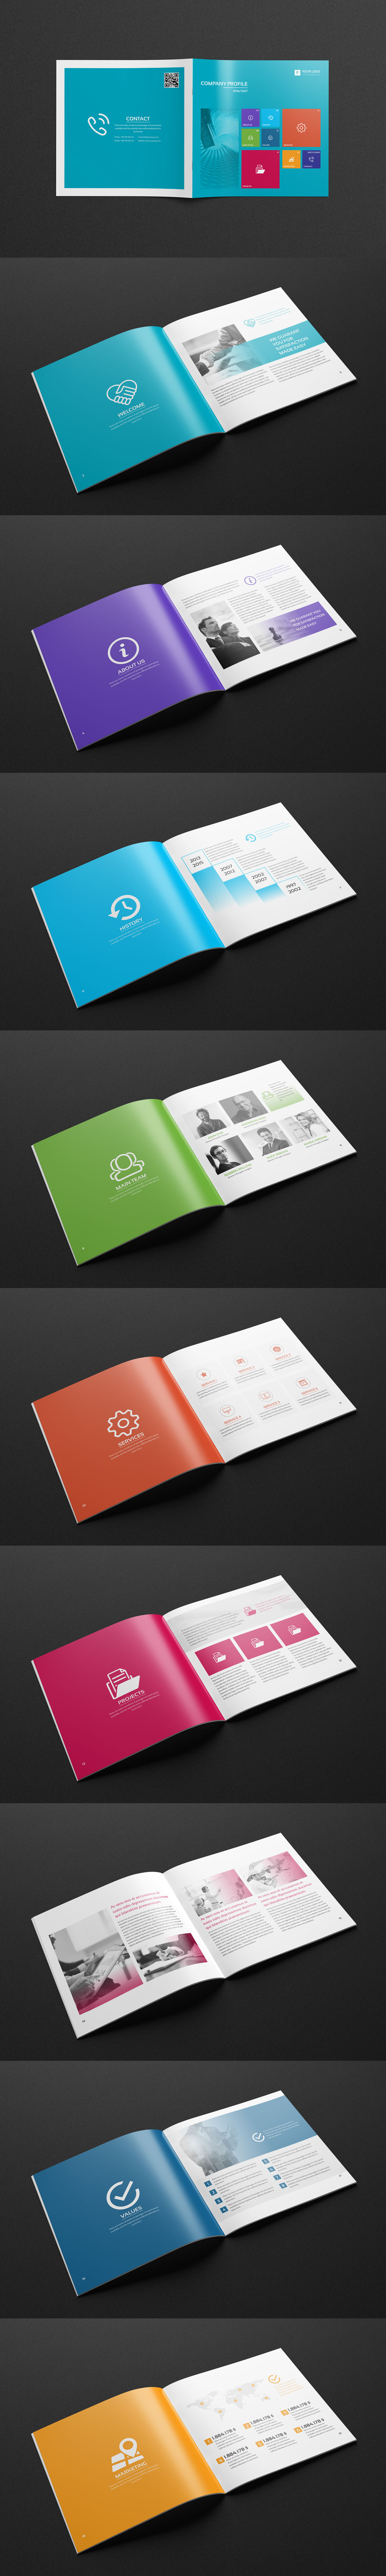 Company Profile Square Brochure Template InDesign INDD - 20 Pages ...